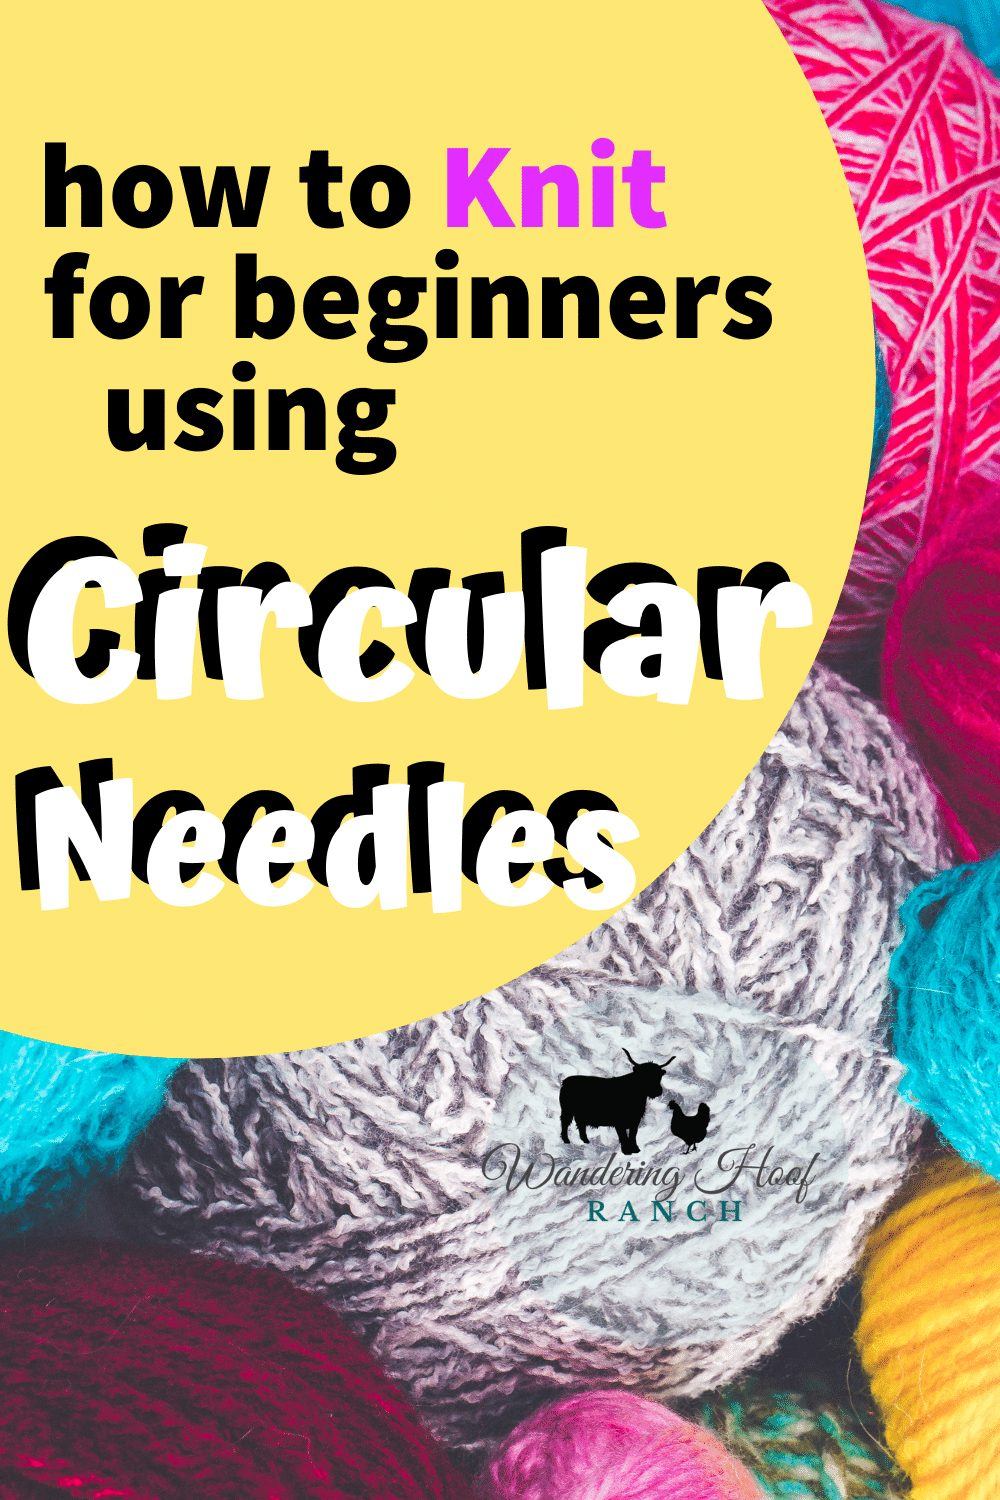 how to knit for beginners using circular needles